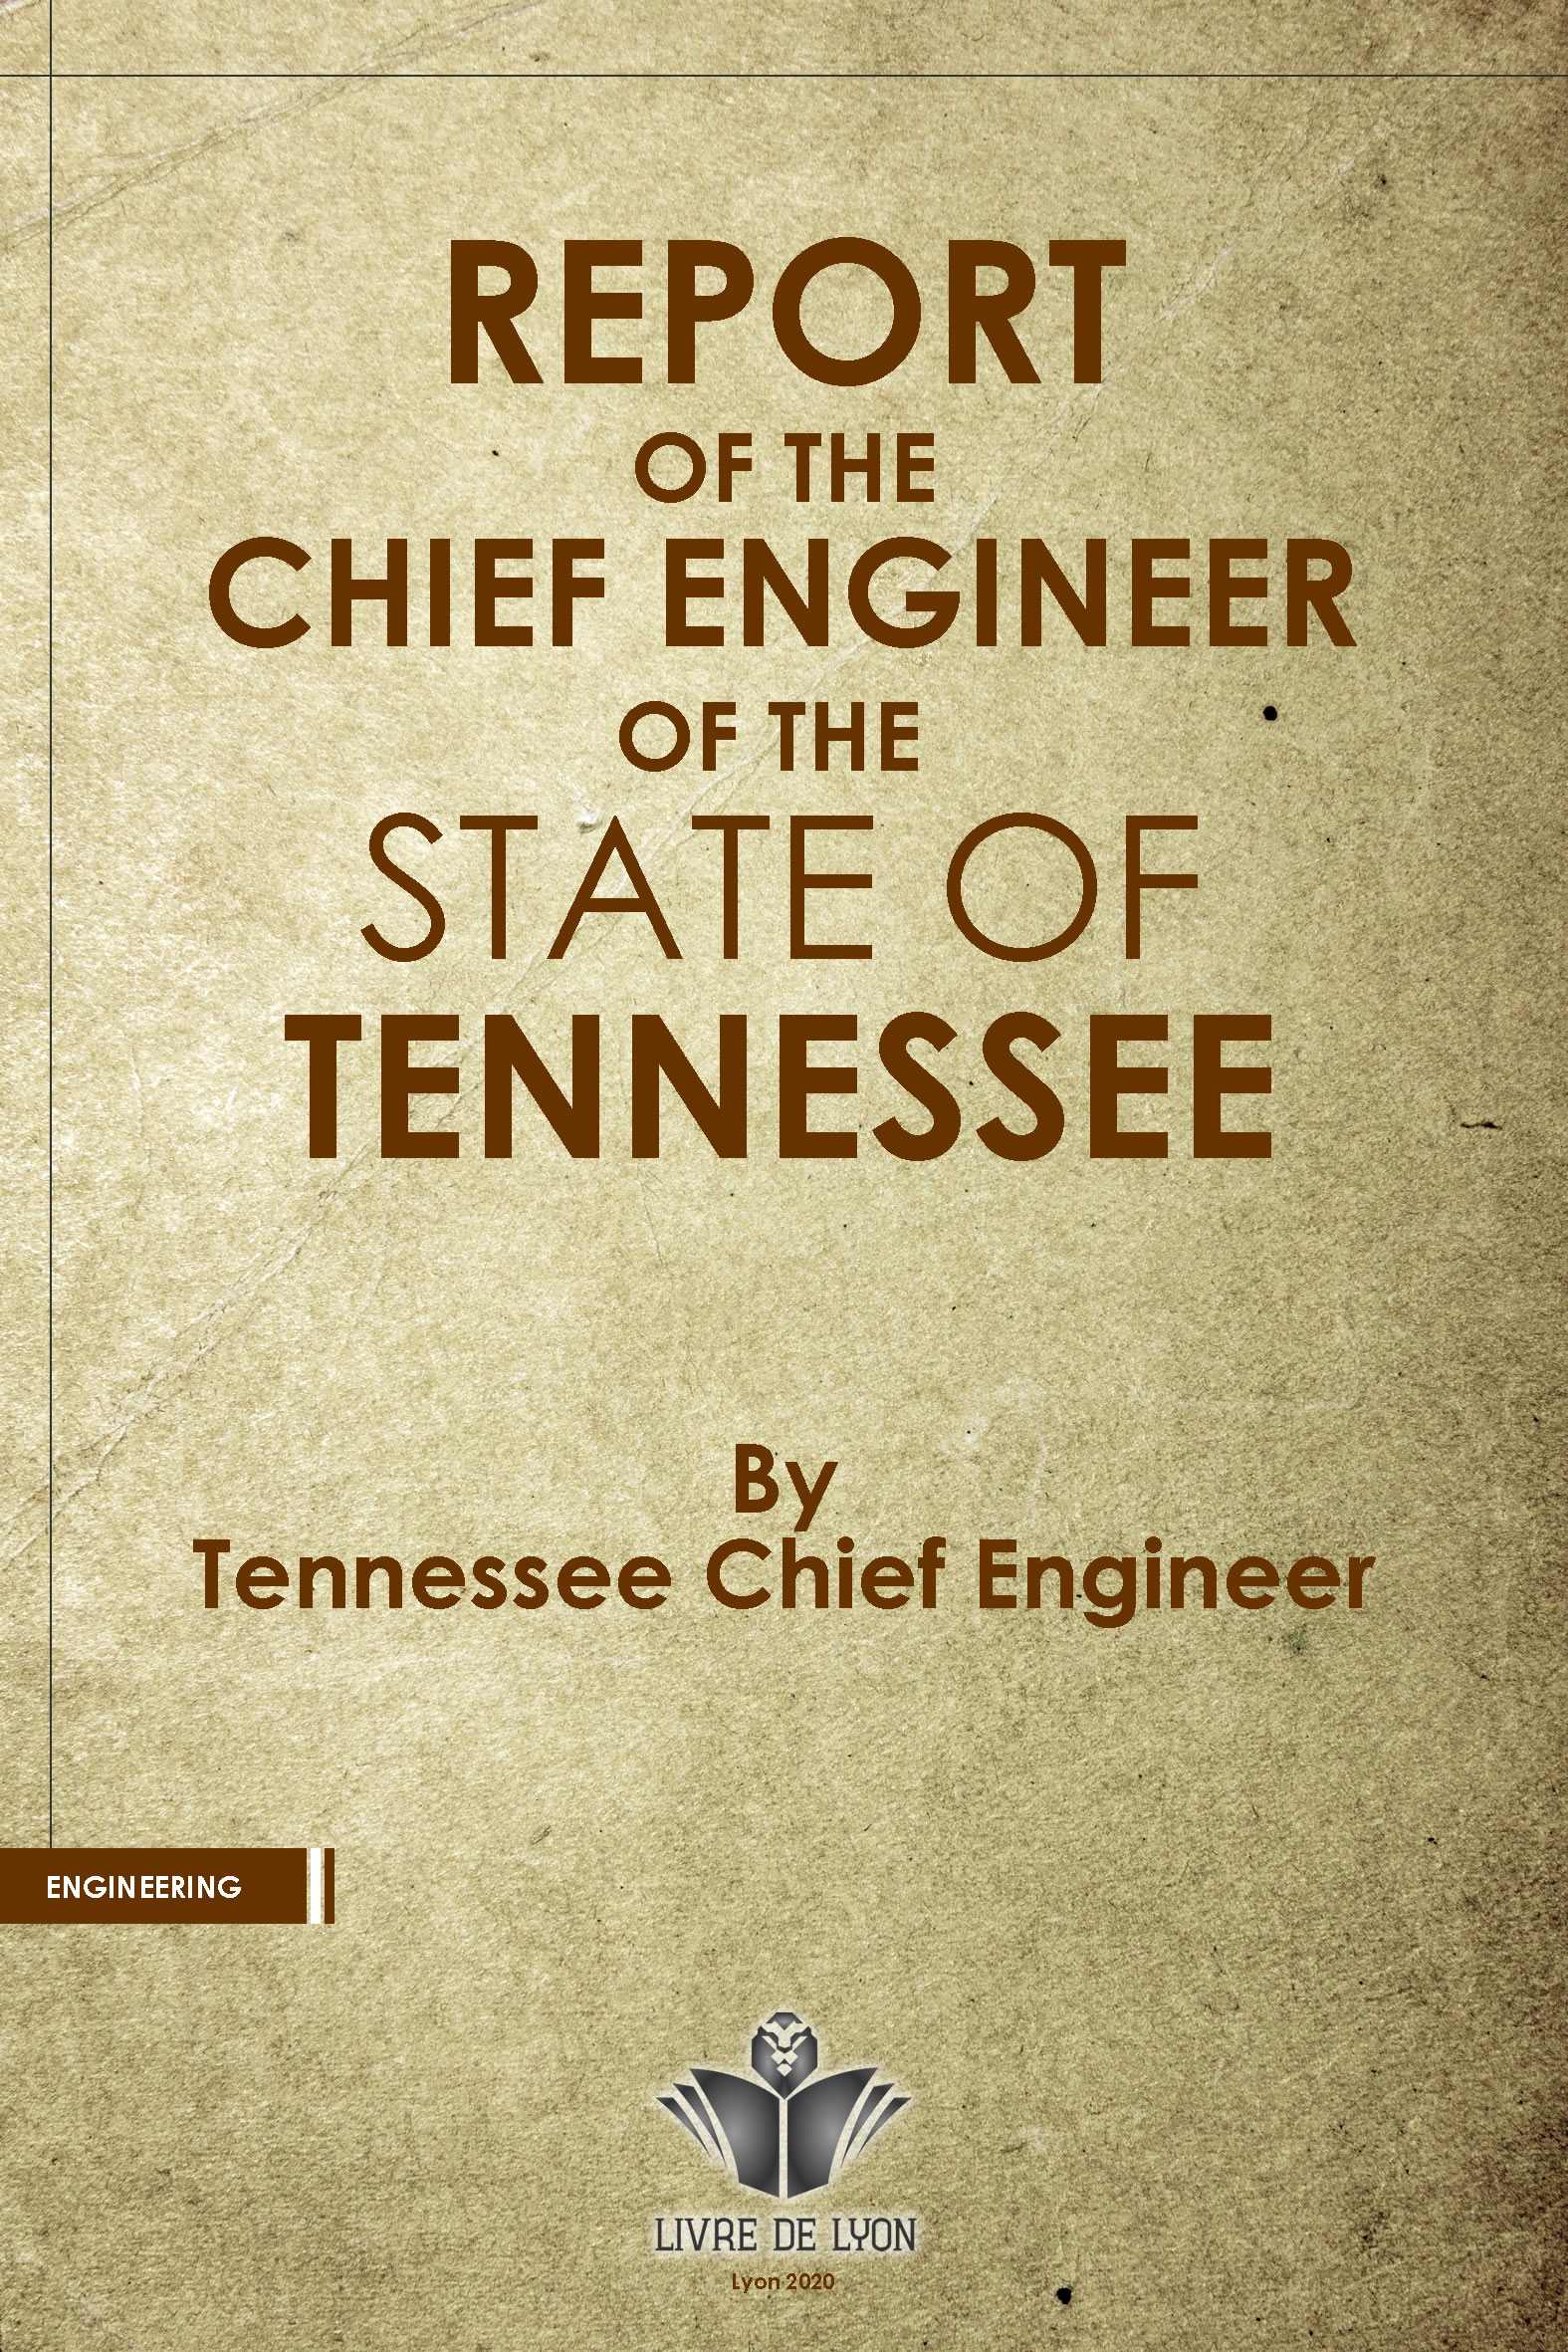 Report of the Chief Engineer of the State of Tennessee, on the Surveys and Examinations